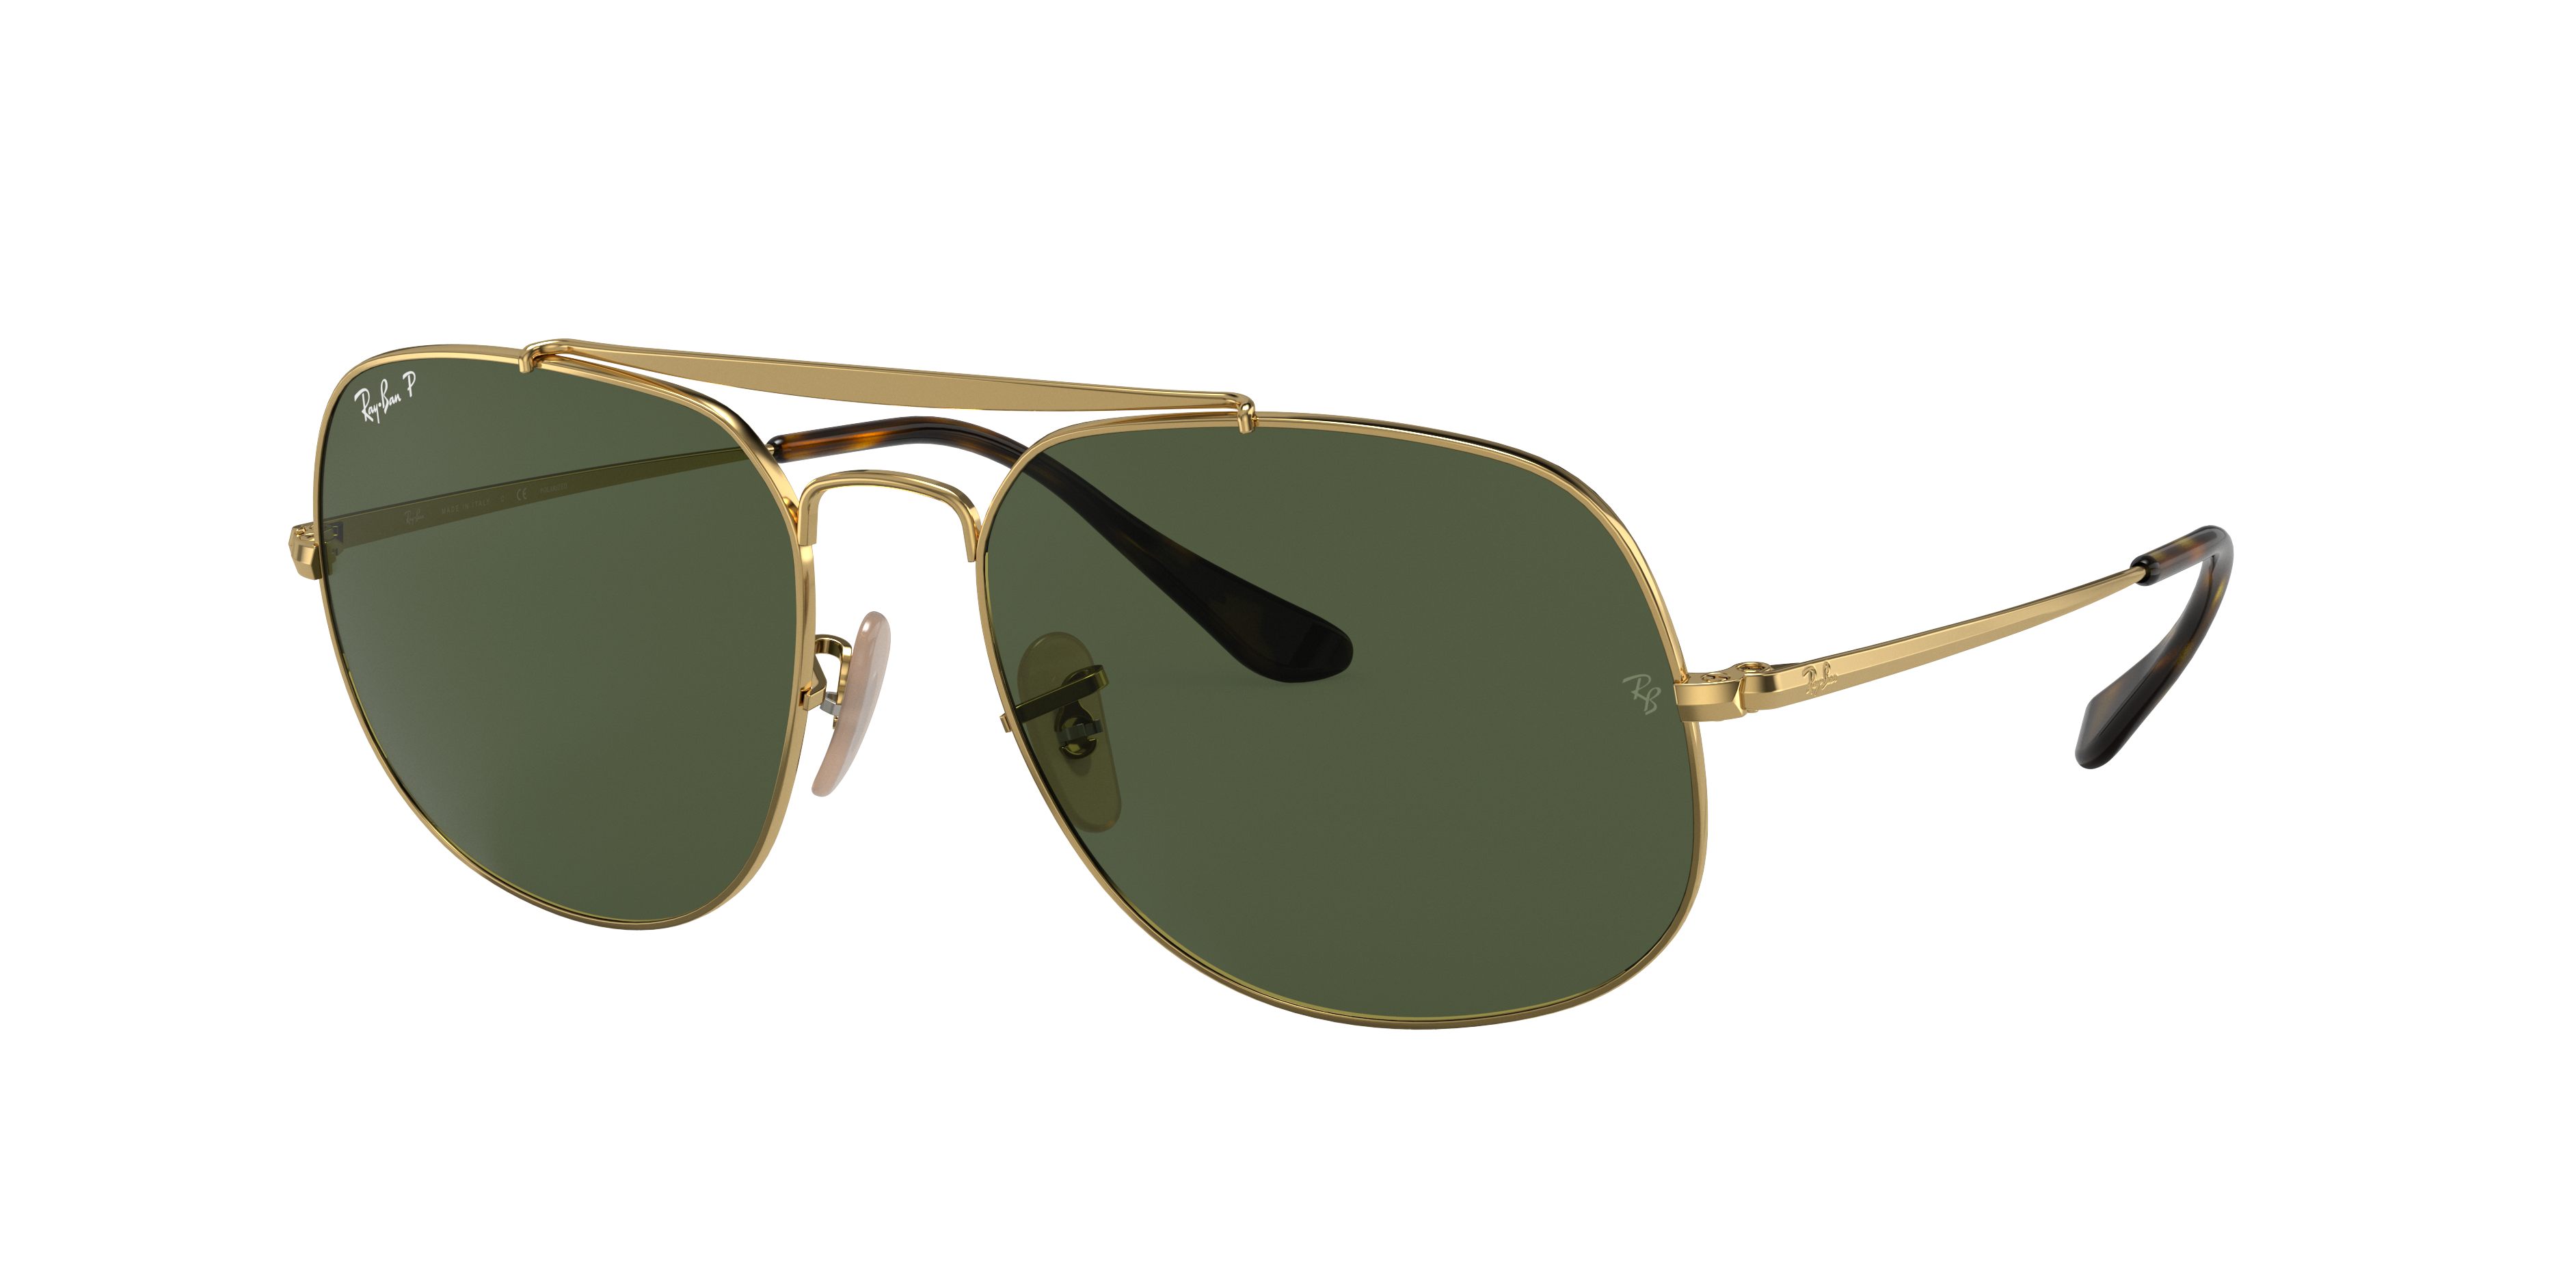 Ray-Ban General Gold, Green Lenses - RB3561